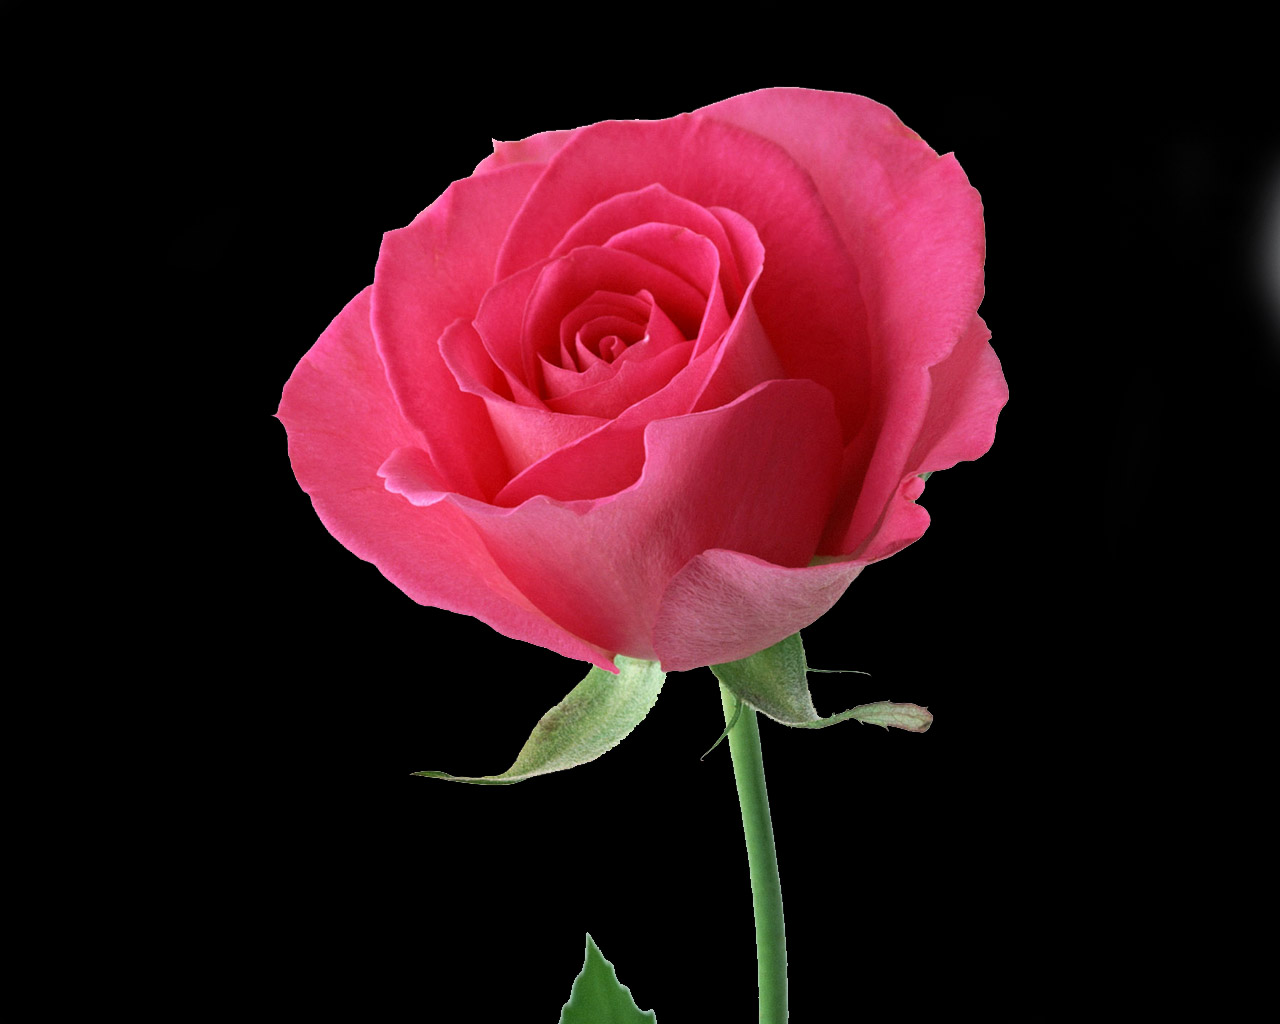 Red Rose Flowers Images High Quality 6 HD Wallpapers